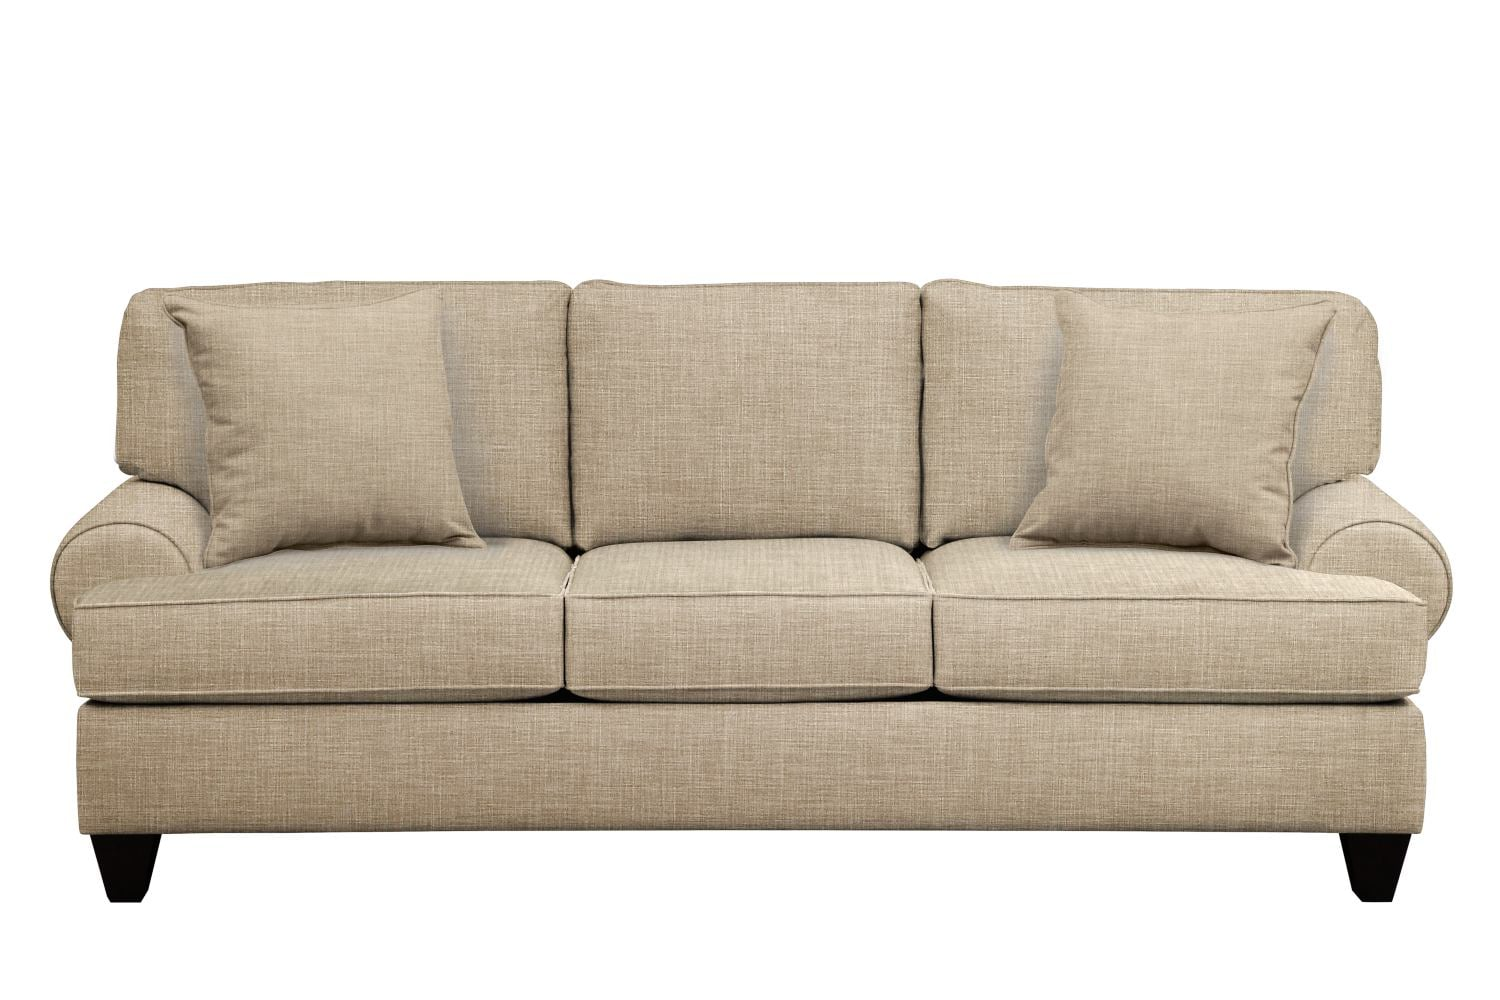 "Living Room Furniture - Bailey Roll Arm Sofa 91"" Milford II Toast w/ Milford II Toast  Pillow"